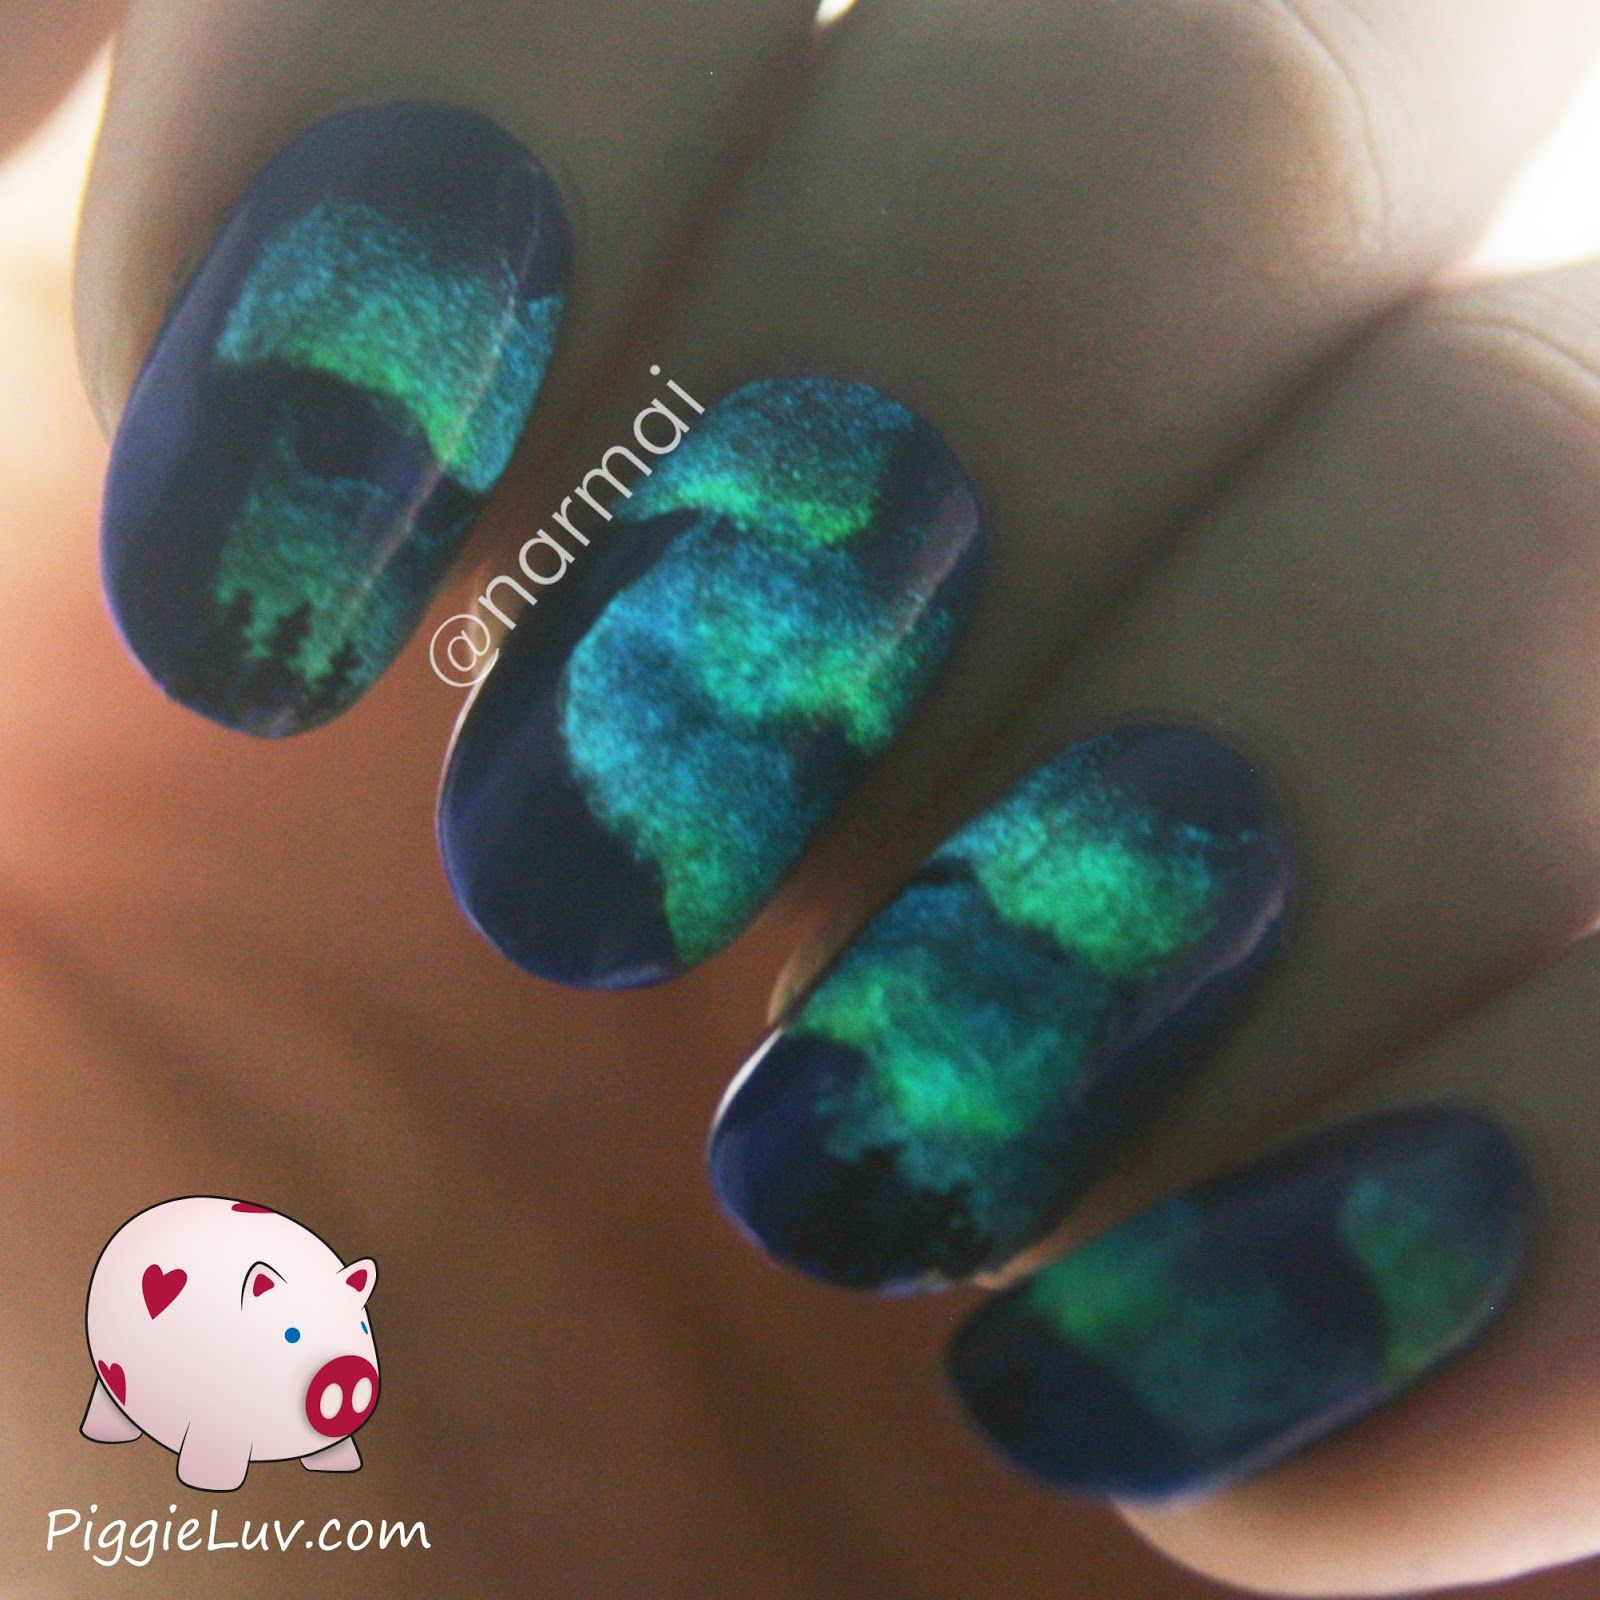 Northern lights glow in the dark nail art video tutorial dark northern lights glow in the dark nail art video tutorial prinsesfo Choice Image